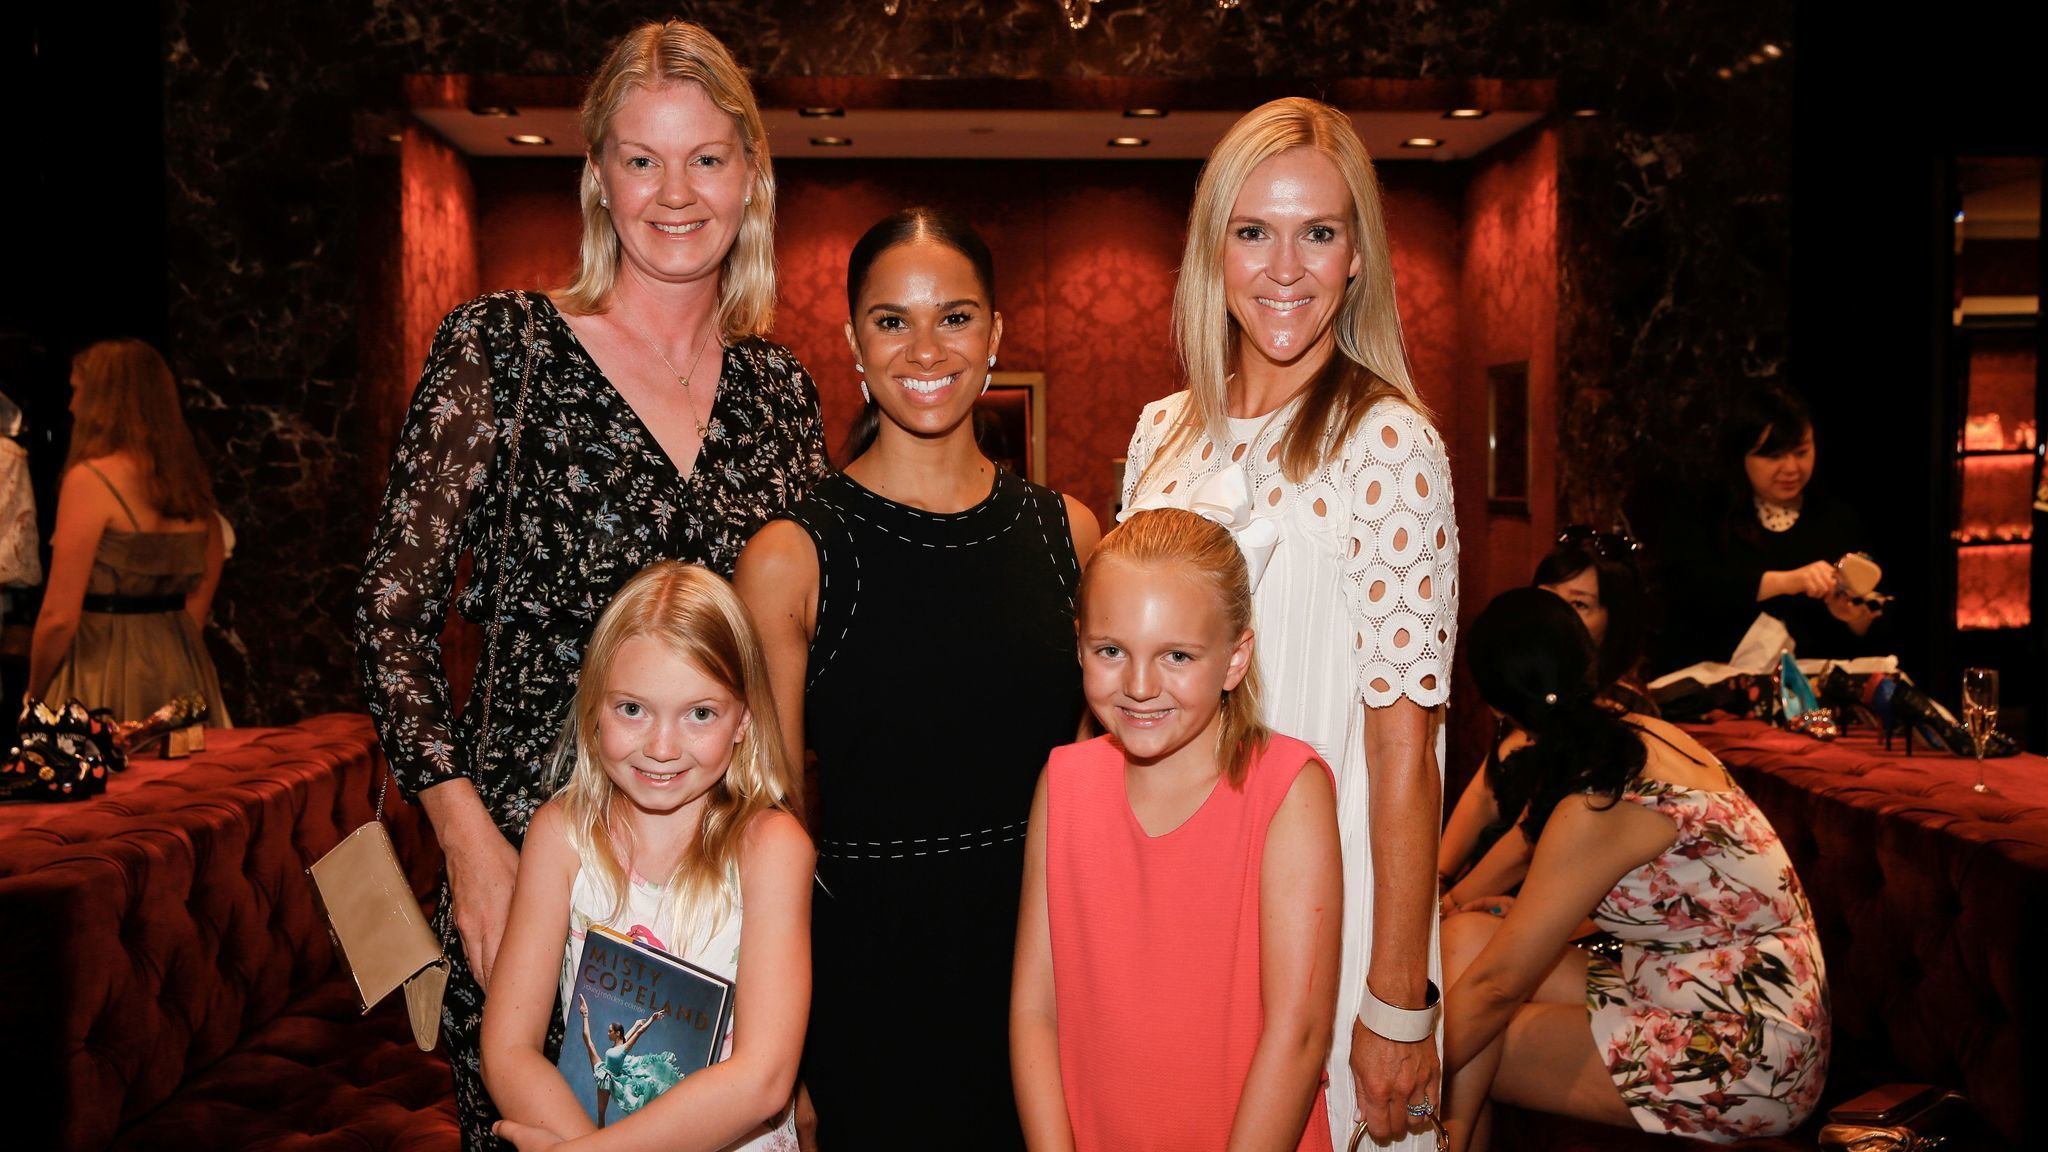 From left, Nicole Joseph, Ava Joseph, ballerina Misty Copeland, Bridget Flanagan and Christy Flanagan.